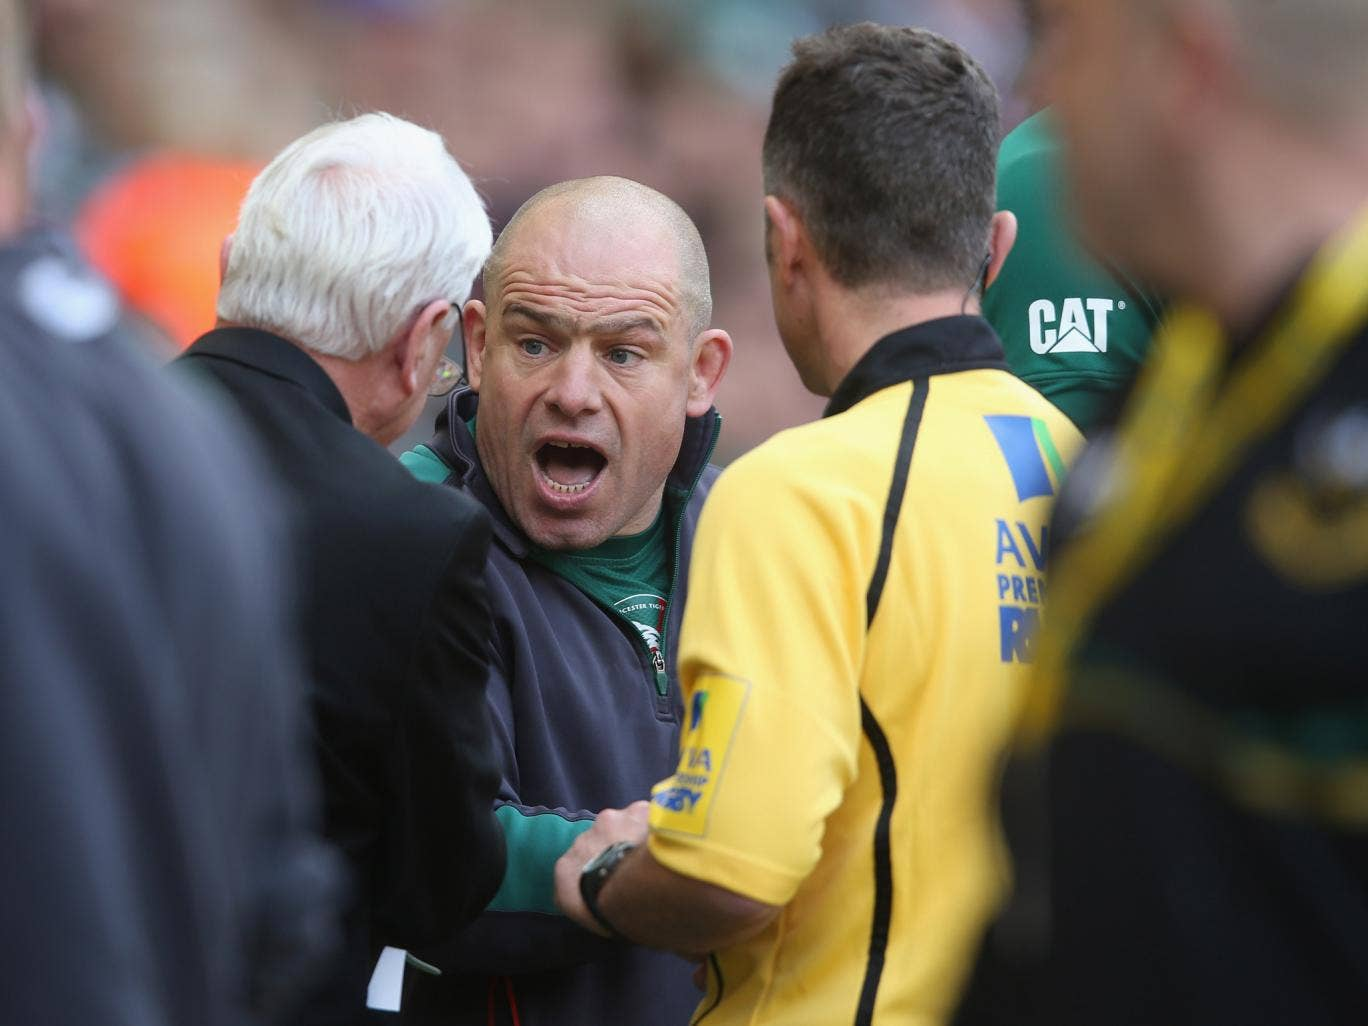 Leicester Tigers boss Richard Cockerill is suspended for nine matches over his conduct in the Premiership final